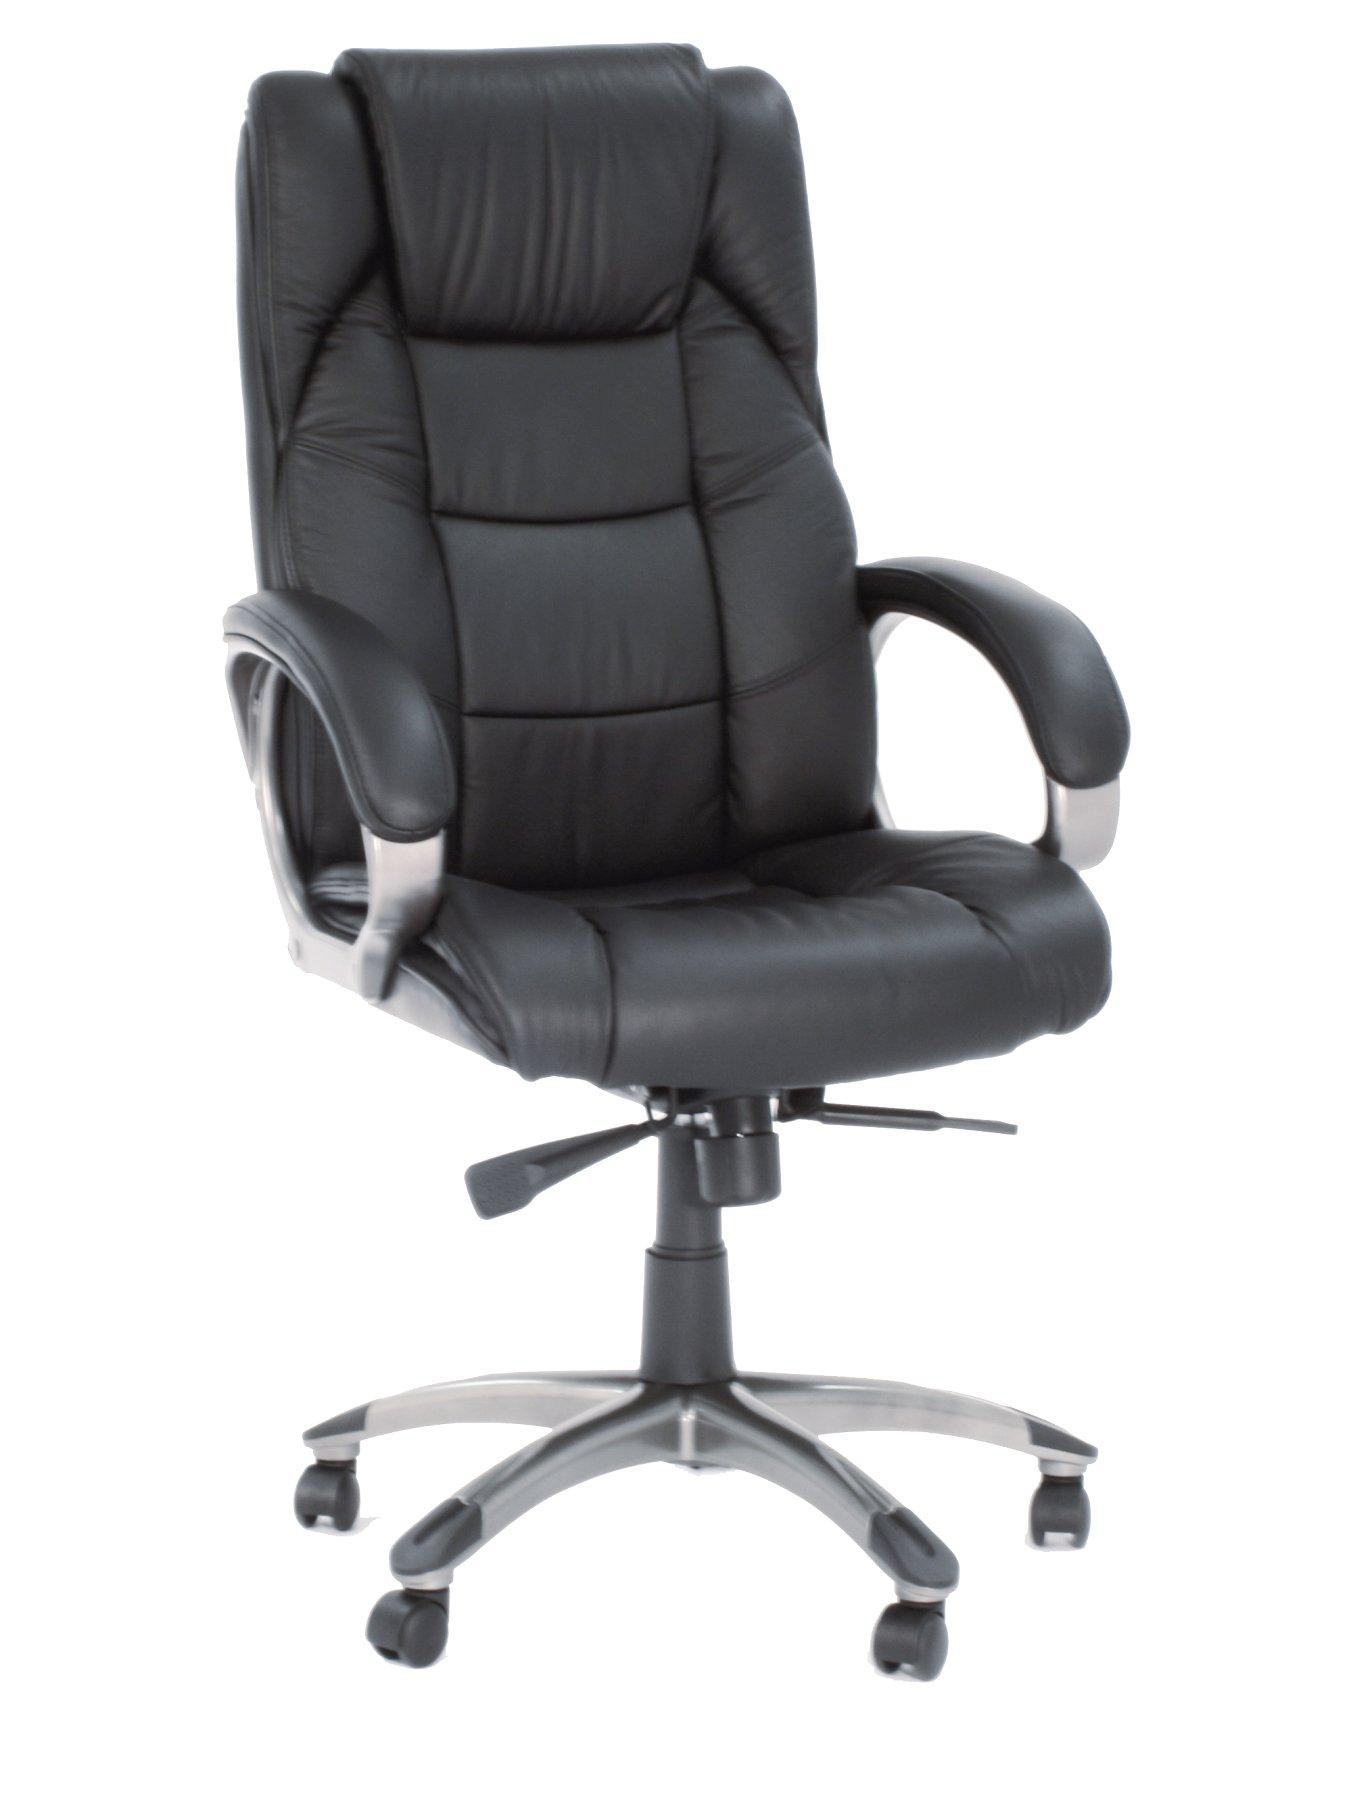 Northland Leather Office Chair, Black,Brown